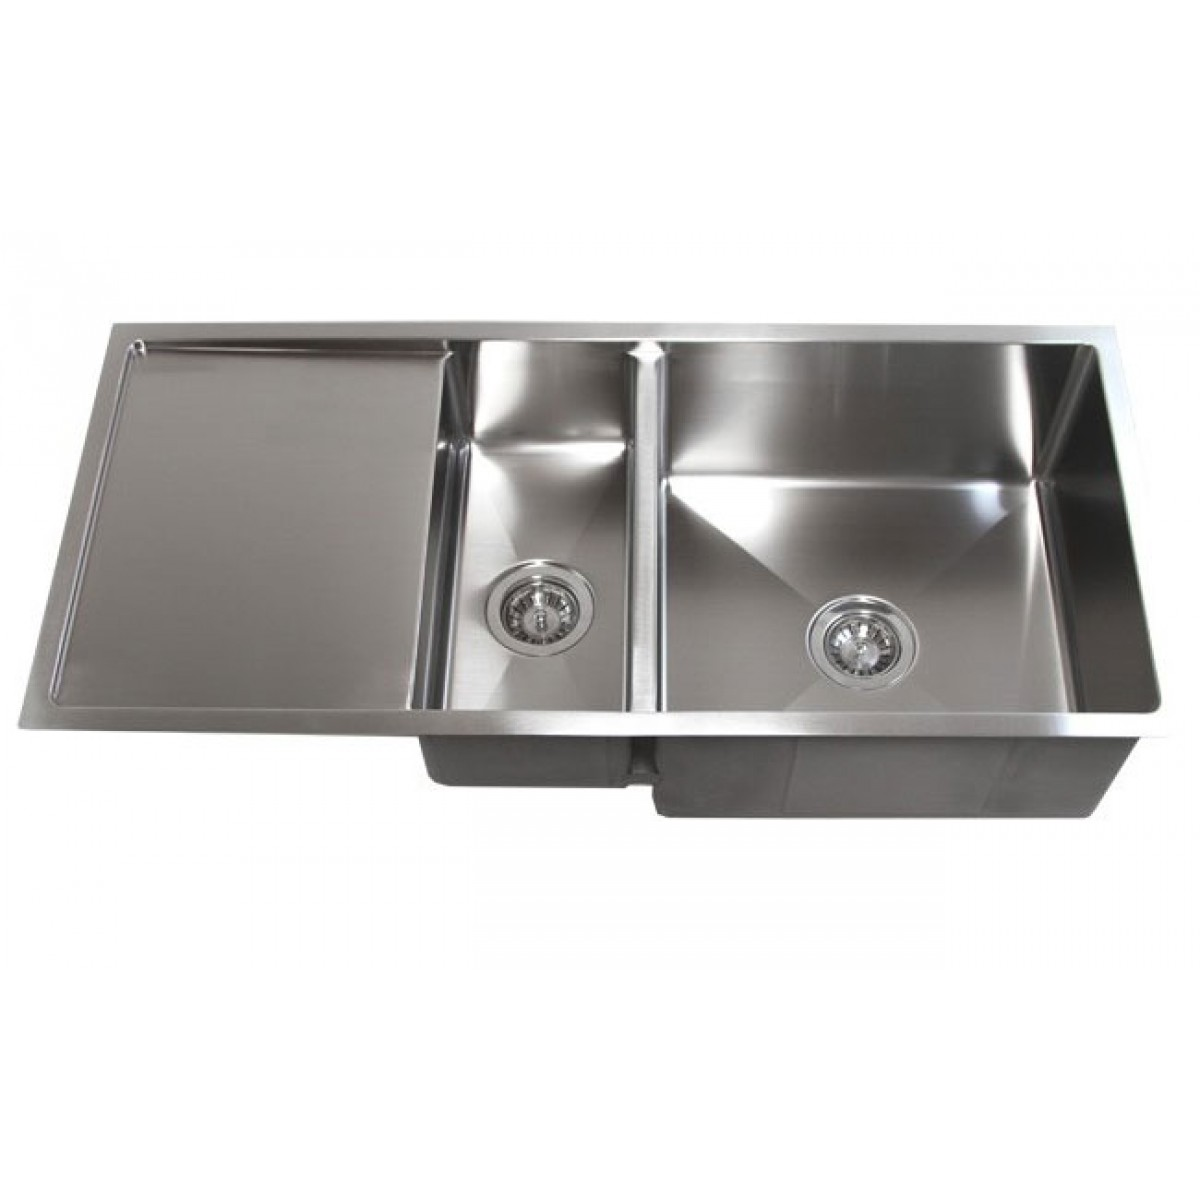 Stainless Steel Undermount  Gauge Double Bowl Kitchen Sink